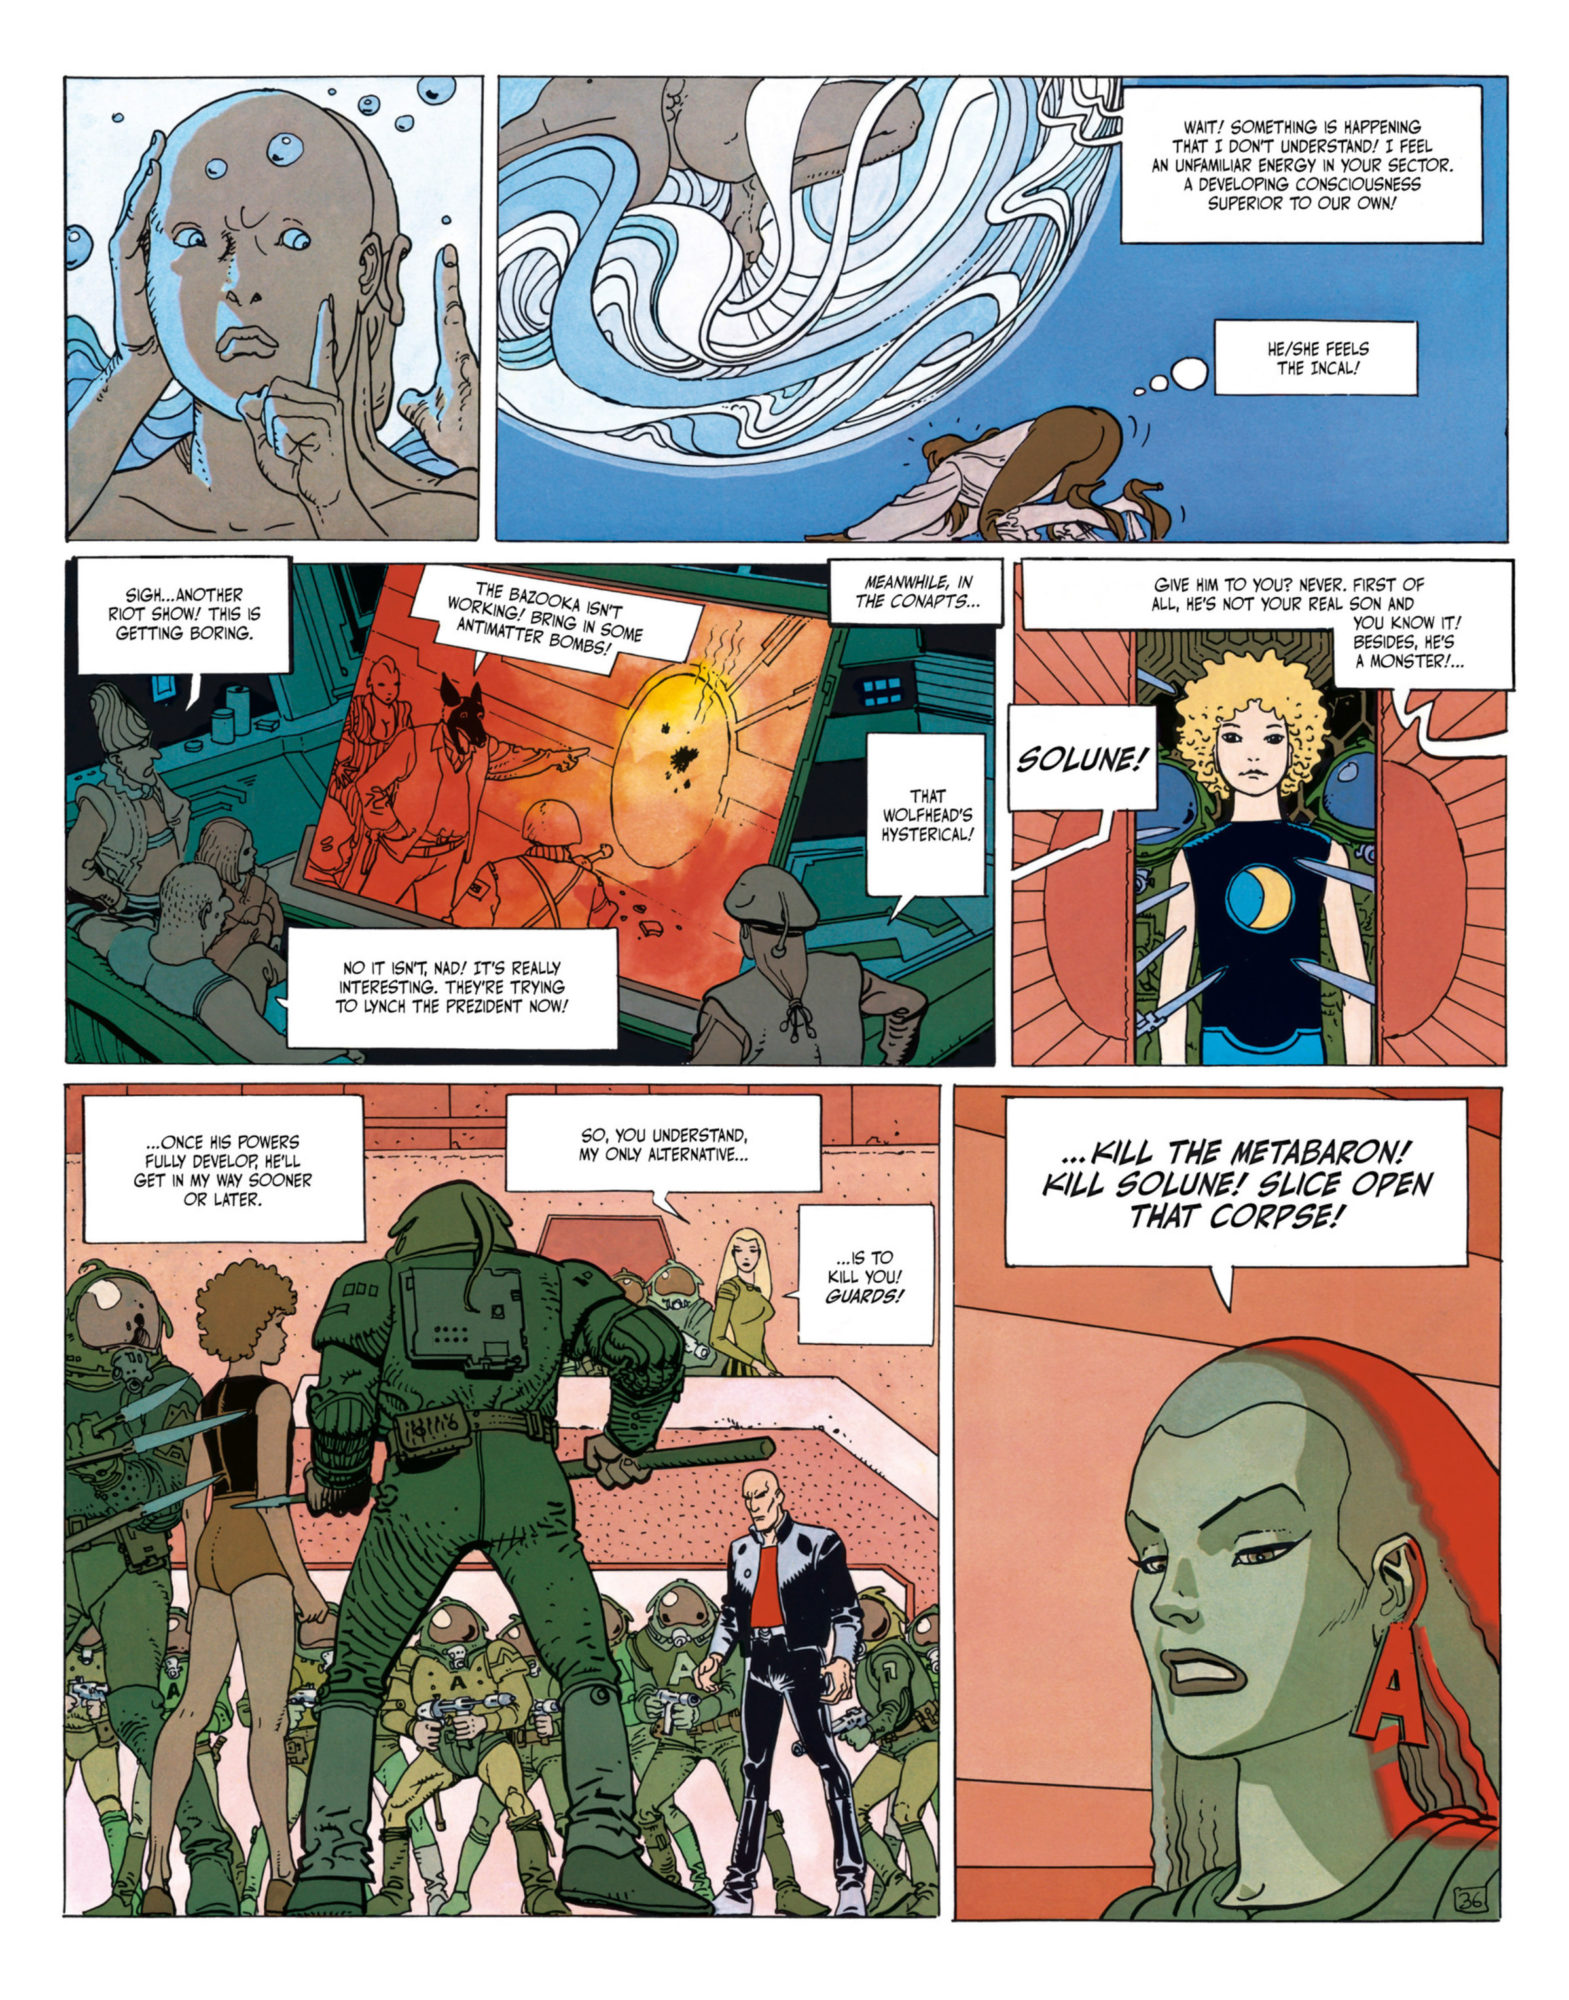 The Incal - Metabaron encounters Tanatah